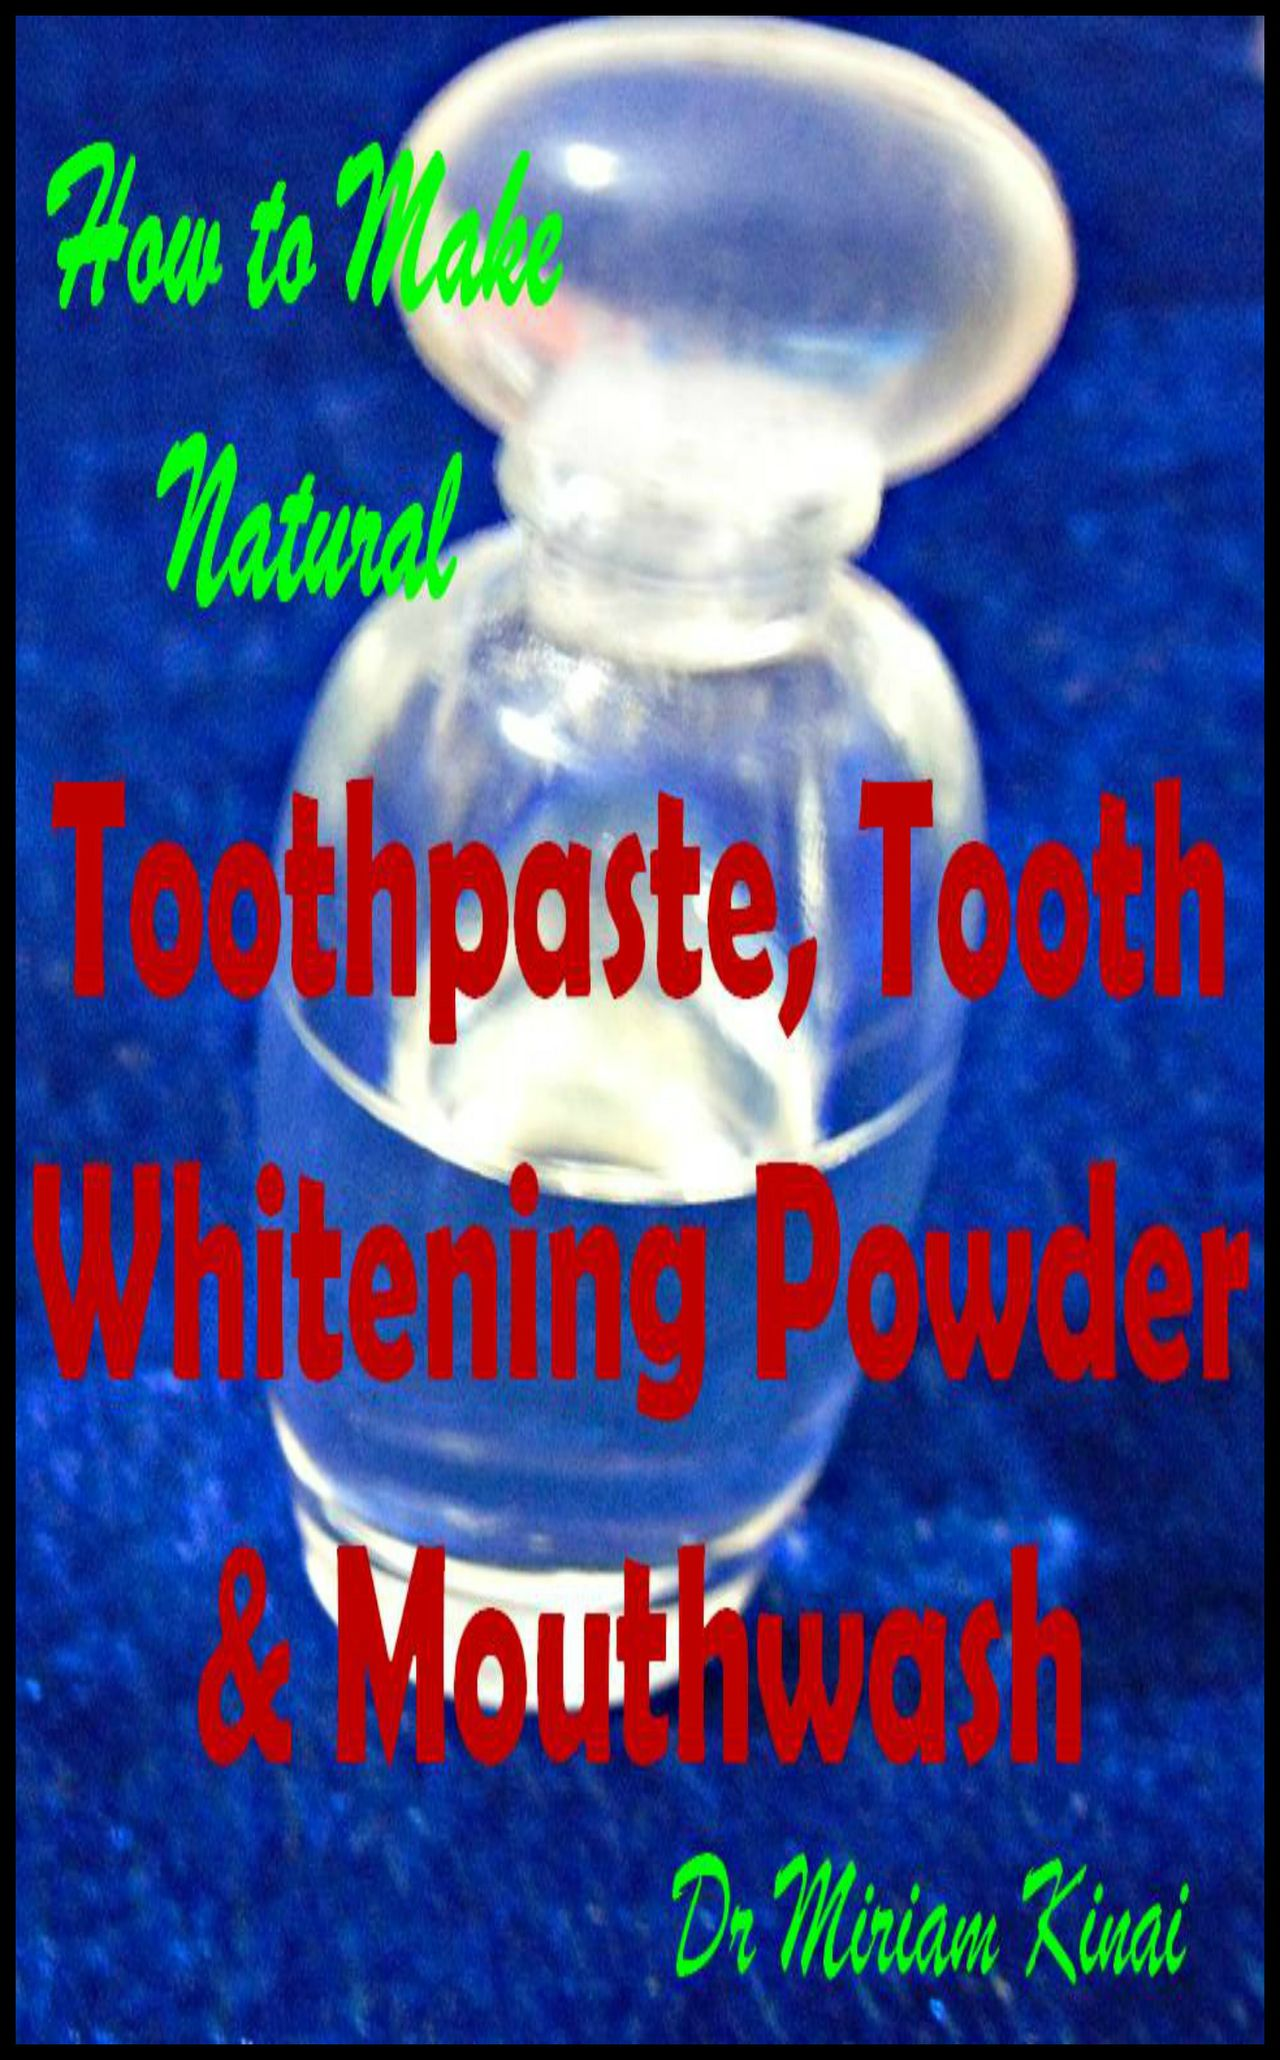 How to Make Natural Toothpaste, Tooth Whitening Powder and Mouthwash